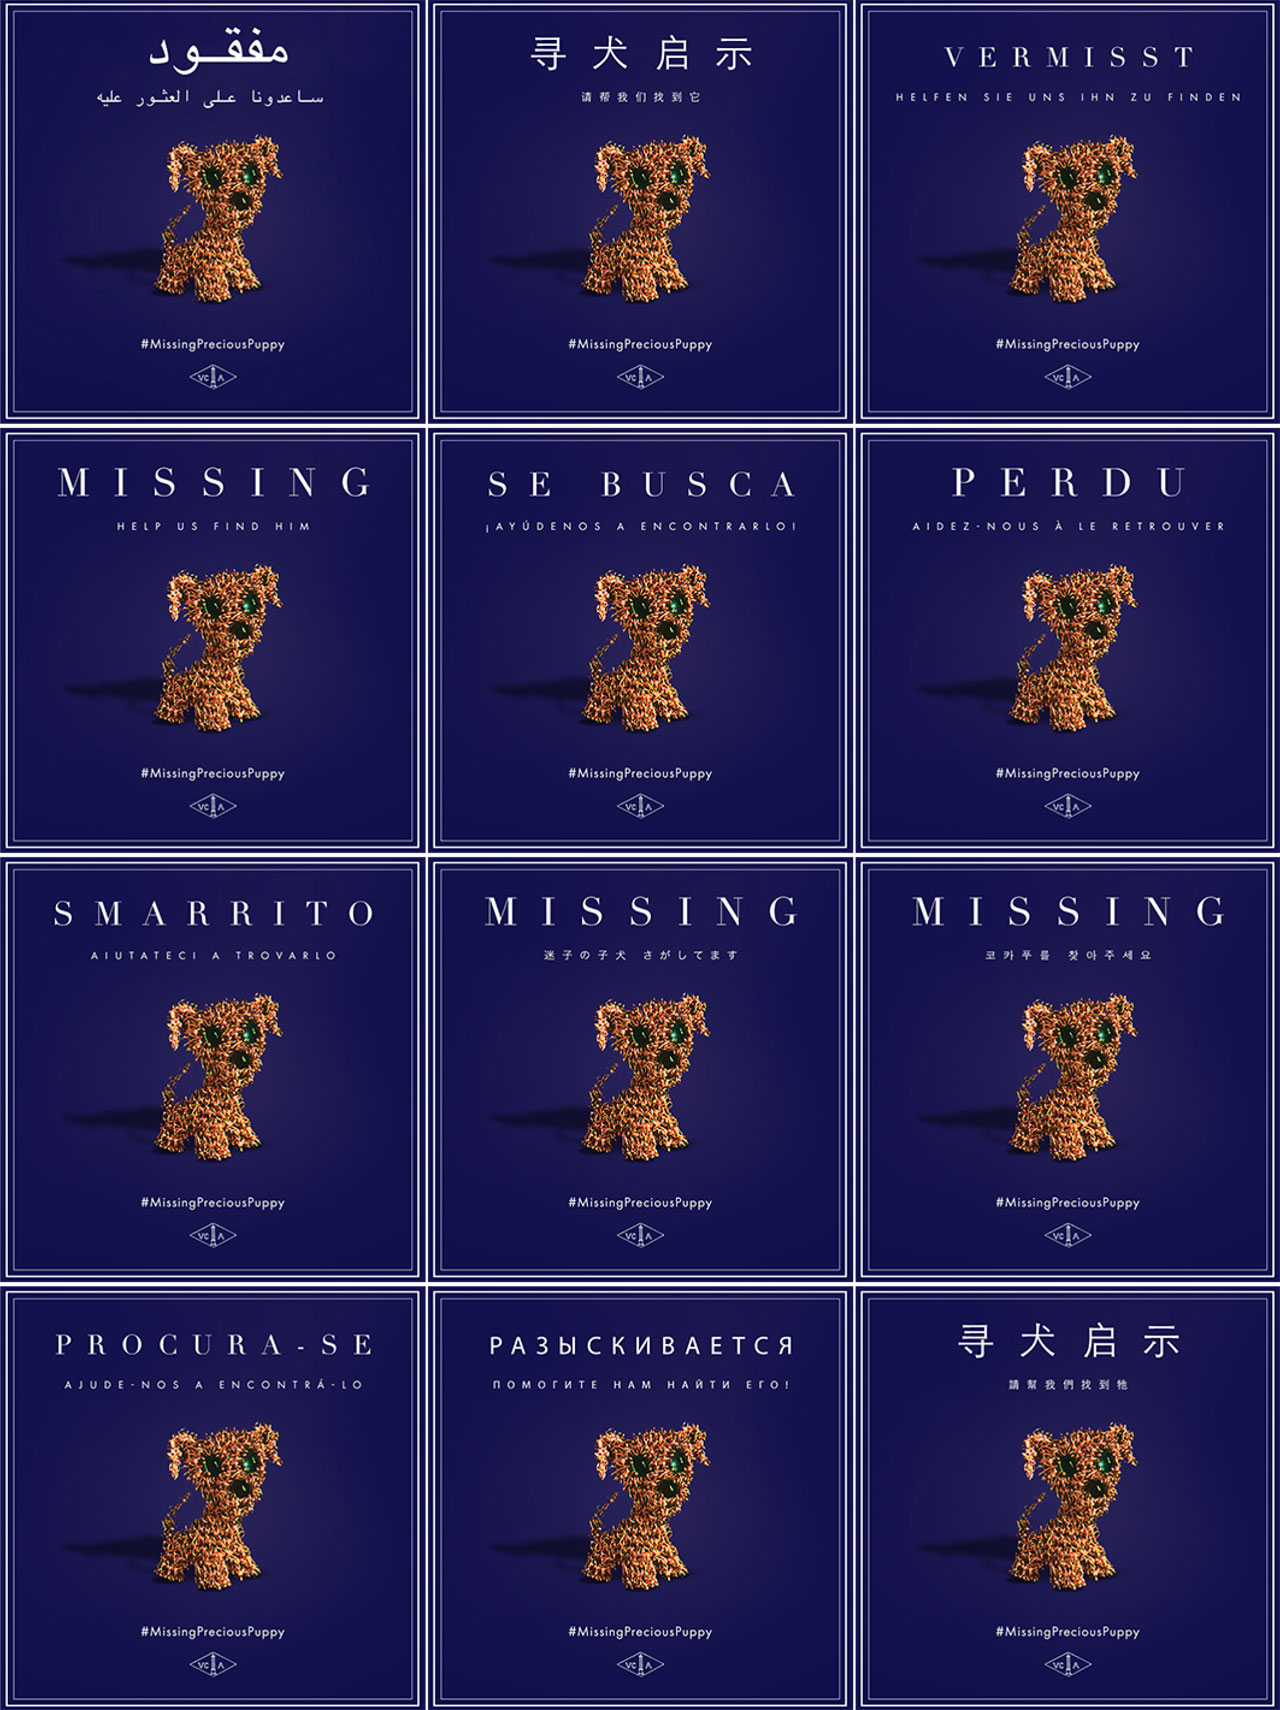 "DOWNLOAD the Precious Puppy's ""MISSING"" poster which you will find at Yatzer.com/MissingPreciousPuppy in your preferred language and SHARE IT with all your friends, remembering to add the dedicated #MissingPreciousPuppy hashtag when you do."